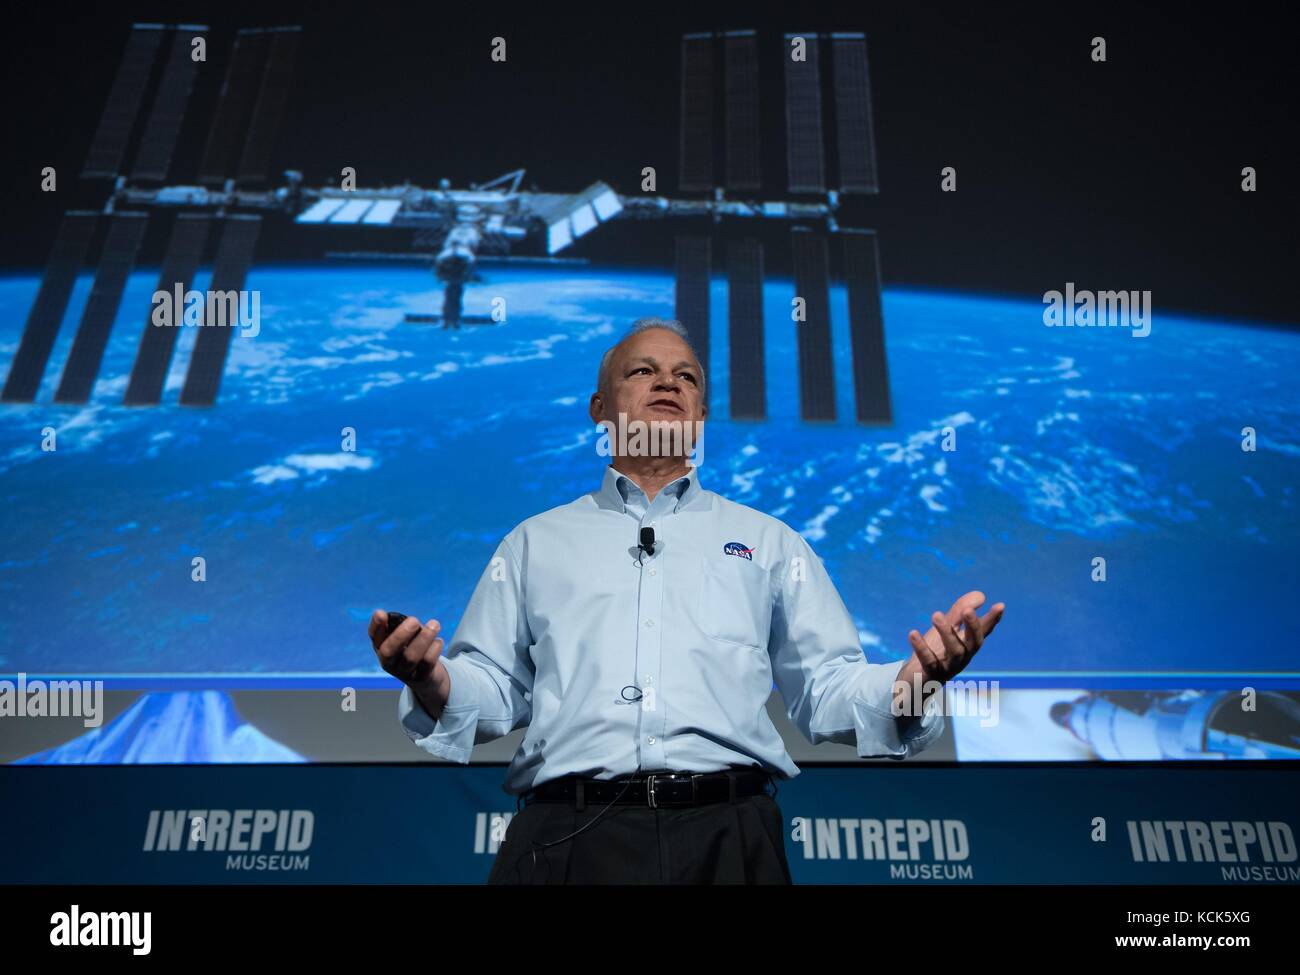 NASA Acting Chief Technologist Douglas Terrier speaks to teachers during an Intrepid Space and Science Festival - Stock Image